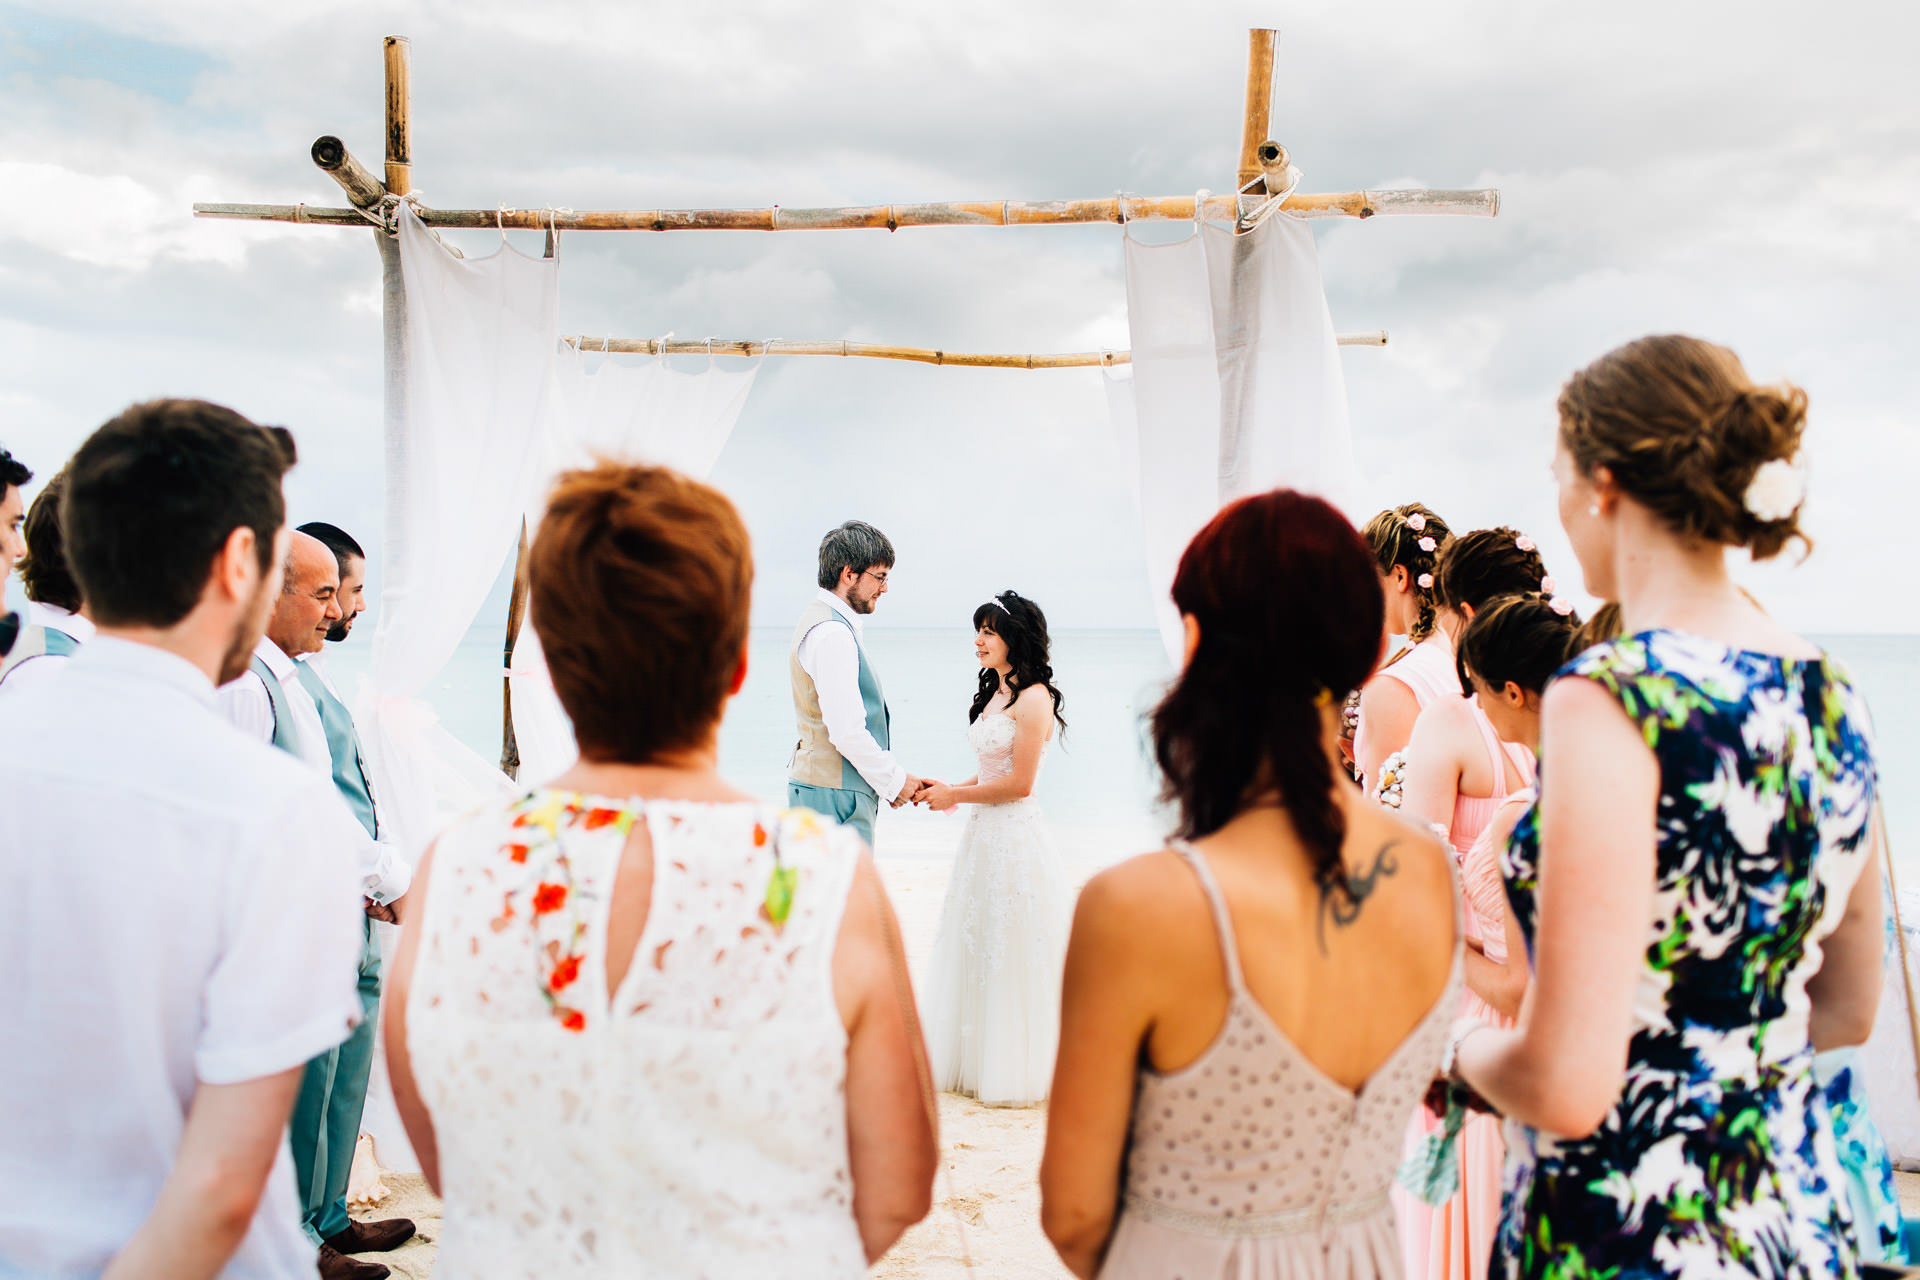 Best wedding photography 2016 - ceremony on the beach in the caribbean